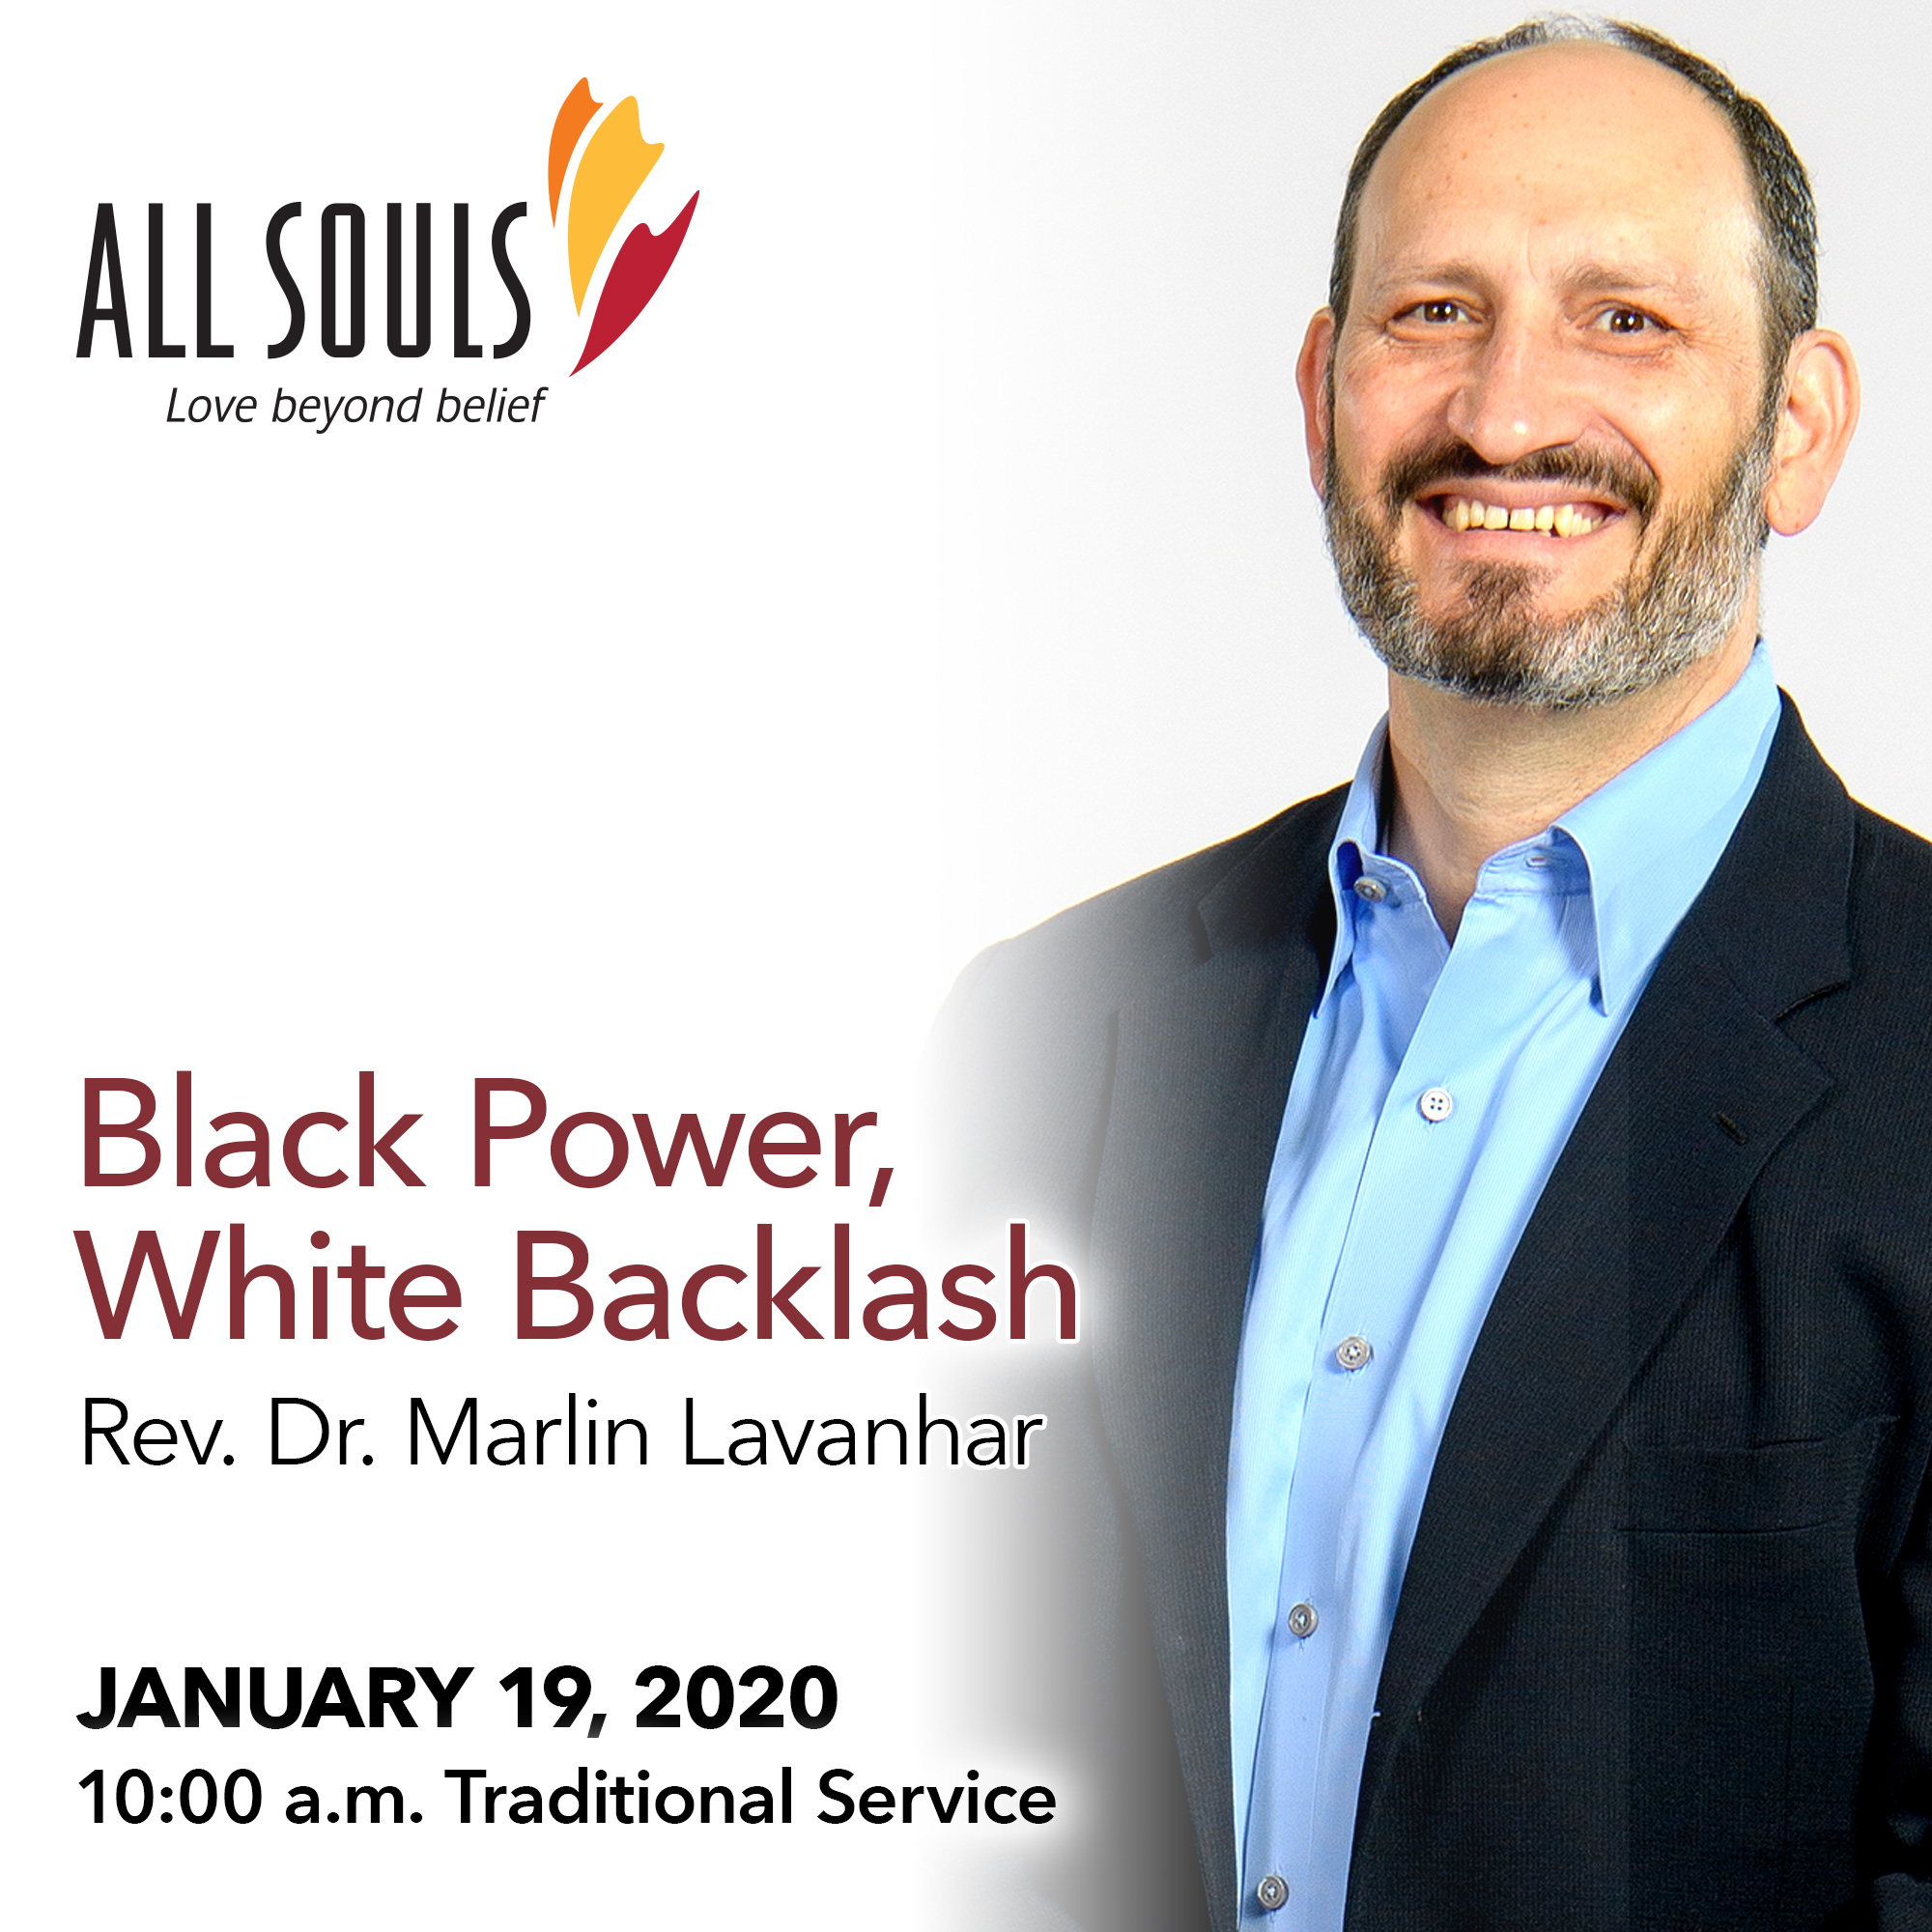 'BLACK POWER, WHITE BACKLASH' - A sermon by Rev. Dr. Marlin Lavanhar (Traditional Service) show art